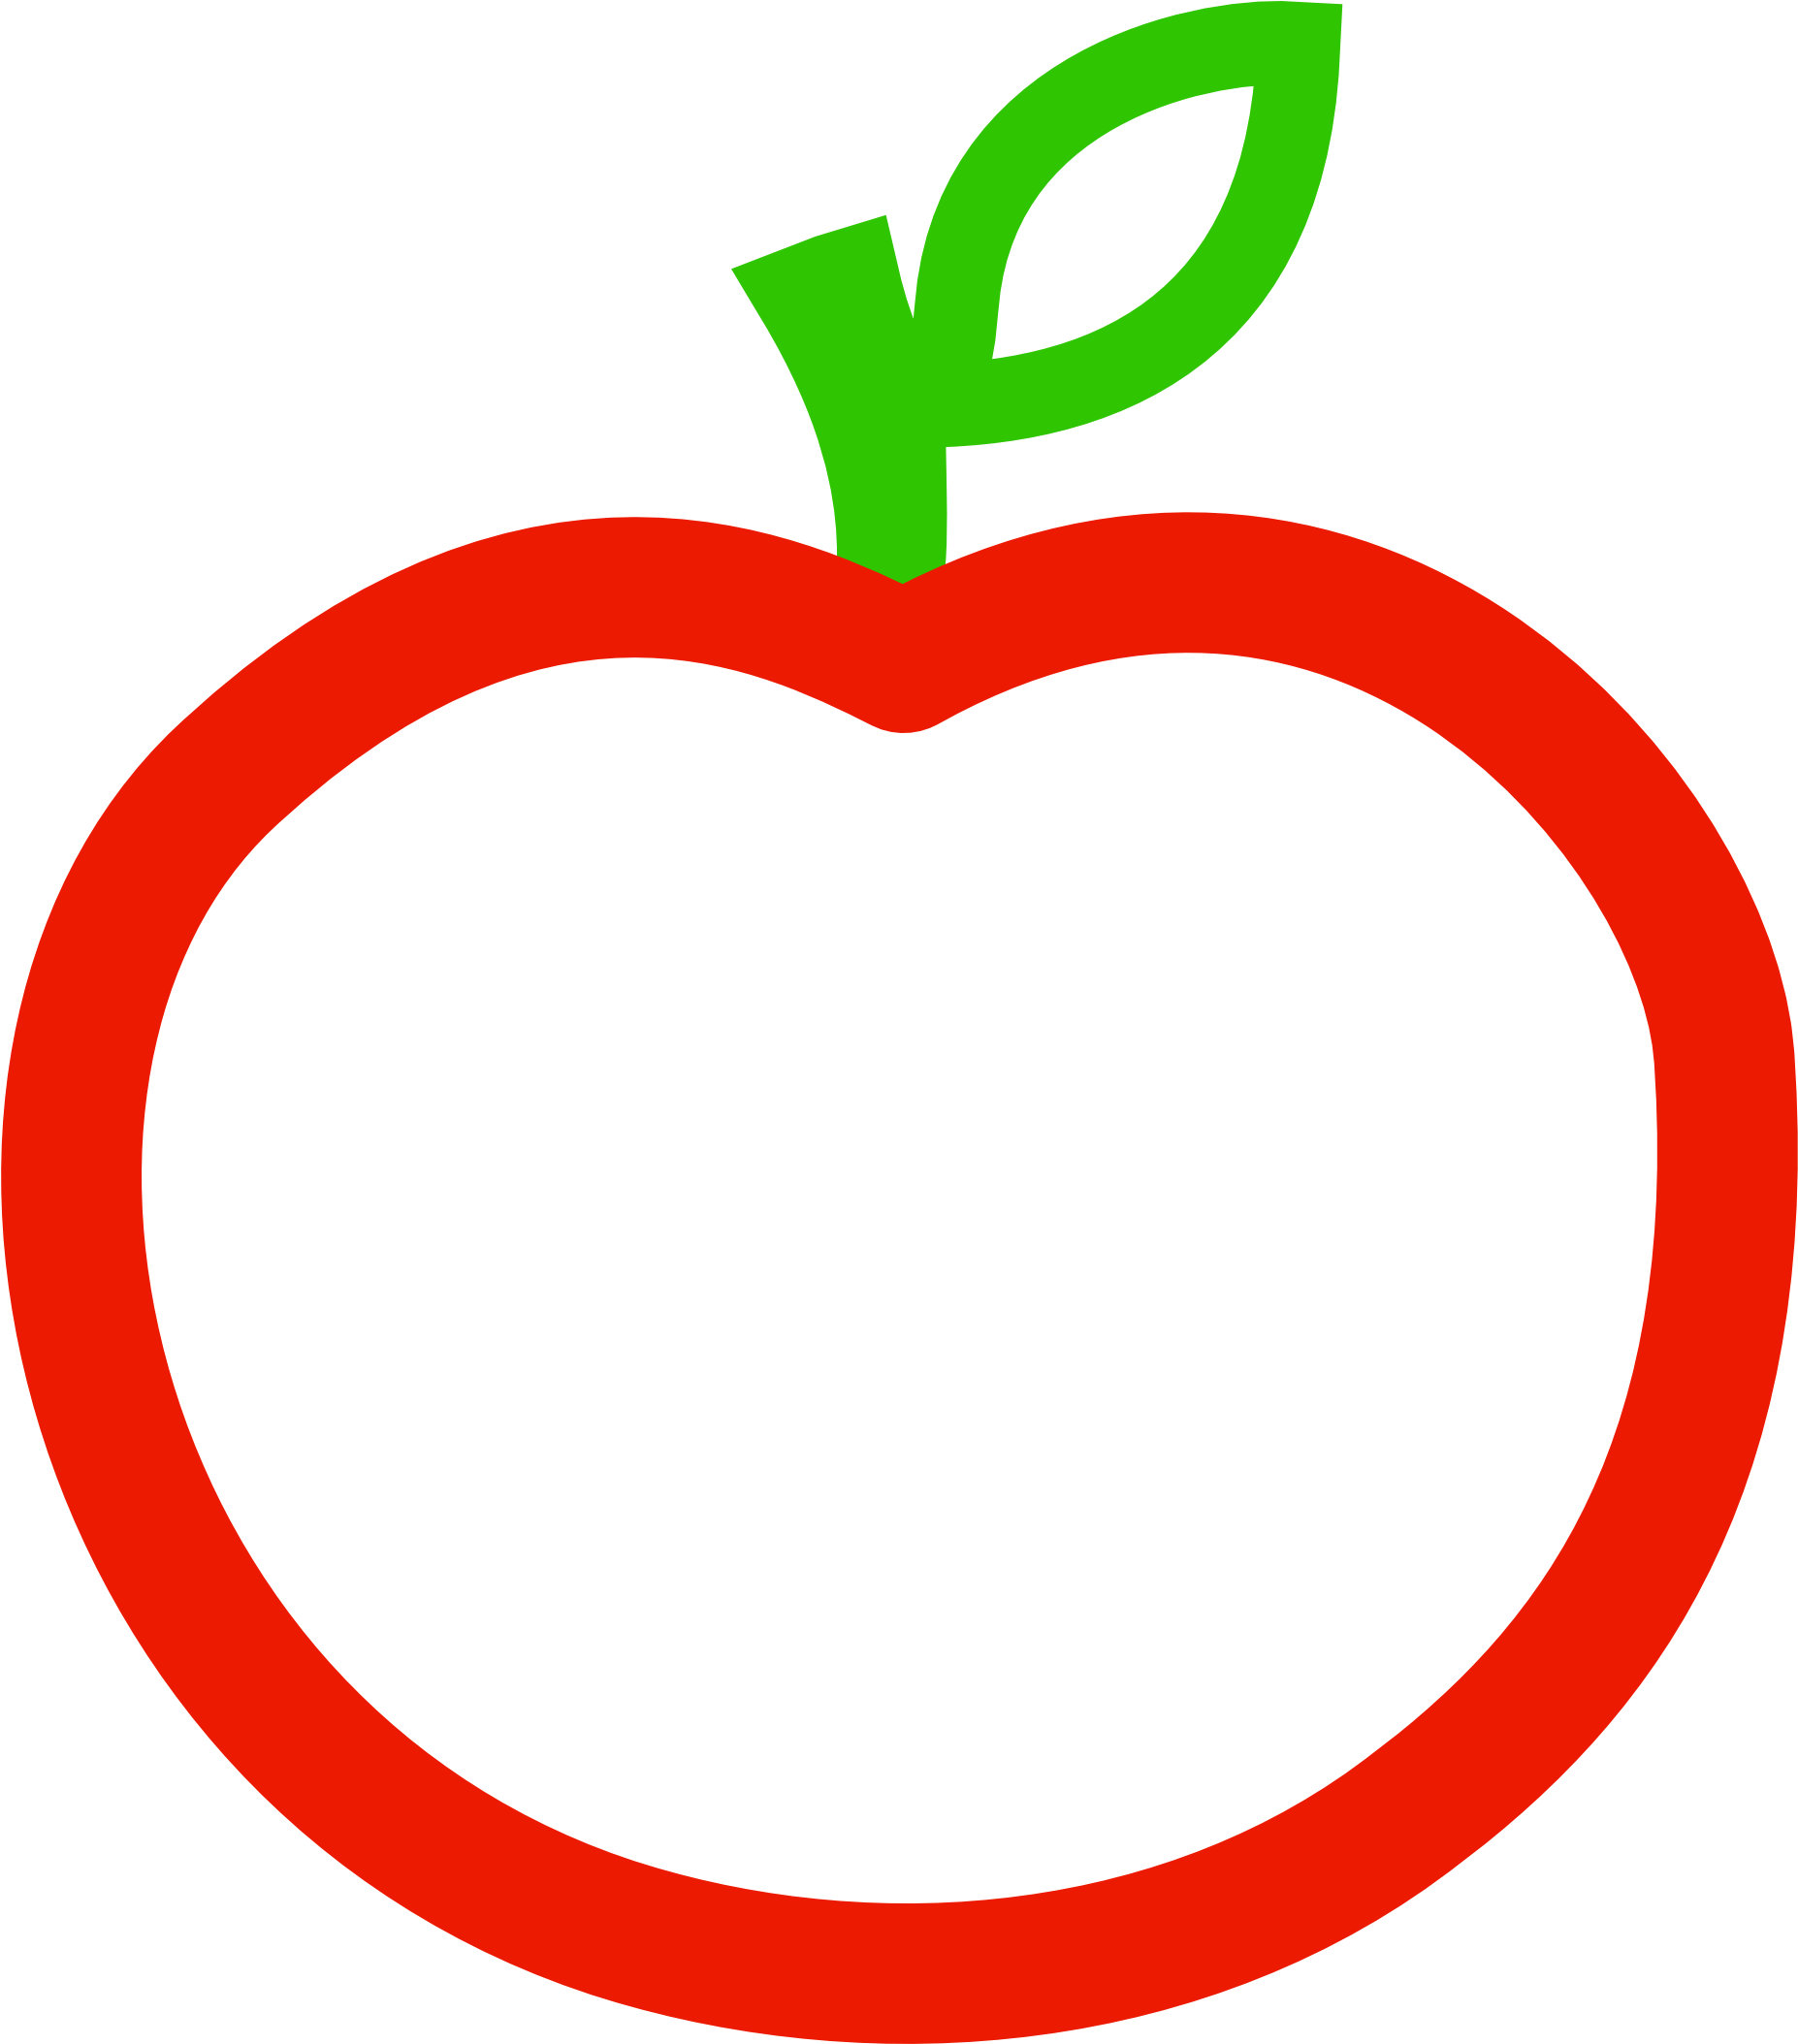 Download Free Apple Png Clipart Apple Clipart Red And White Full Size Png Image Pngkit